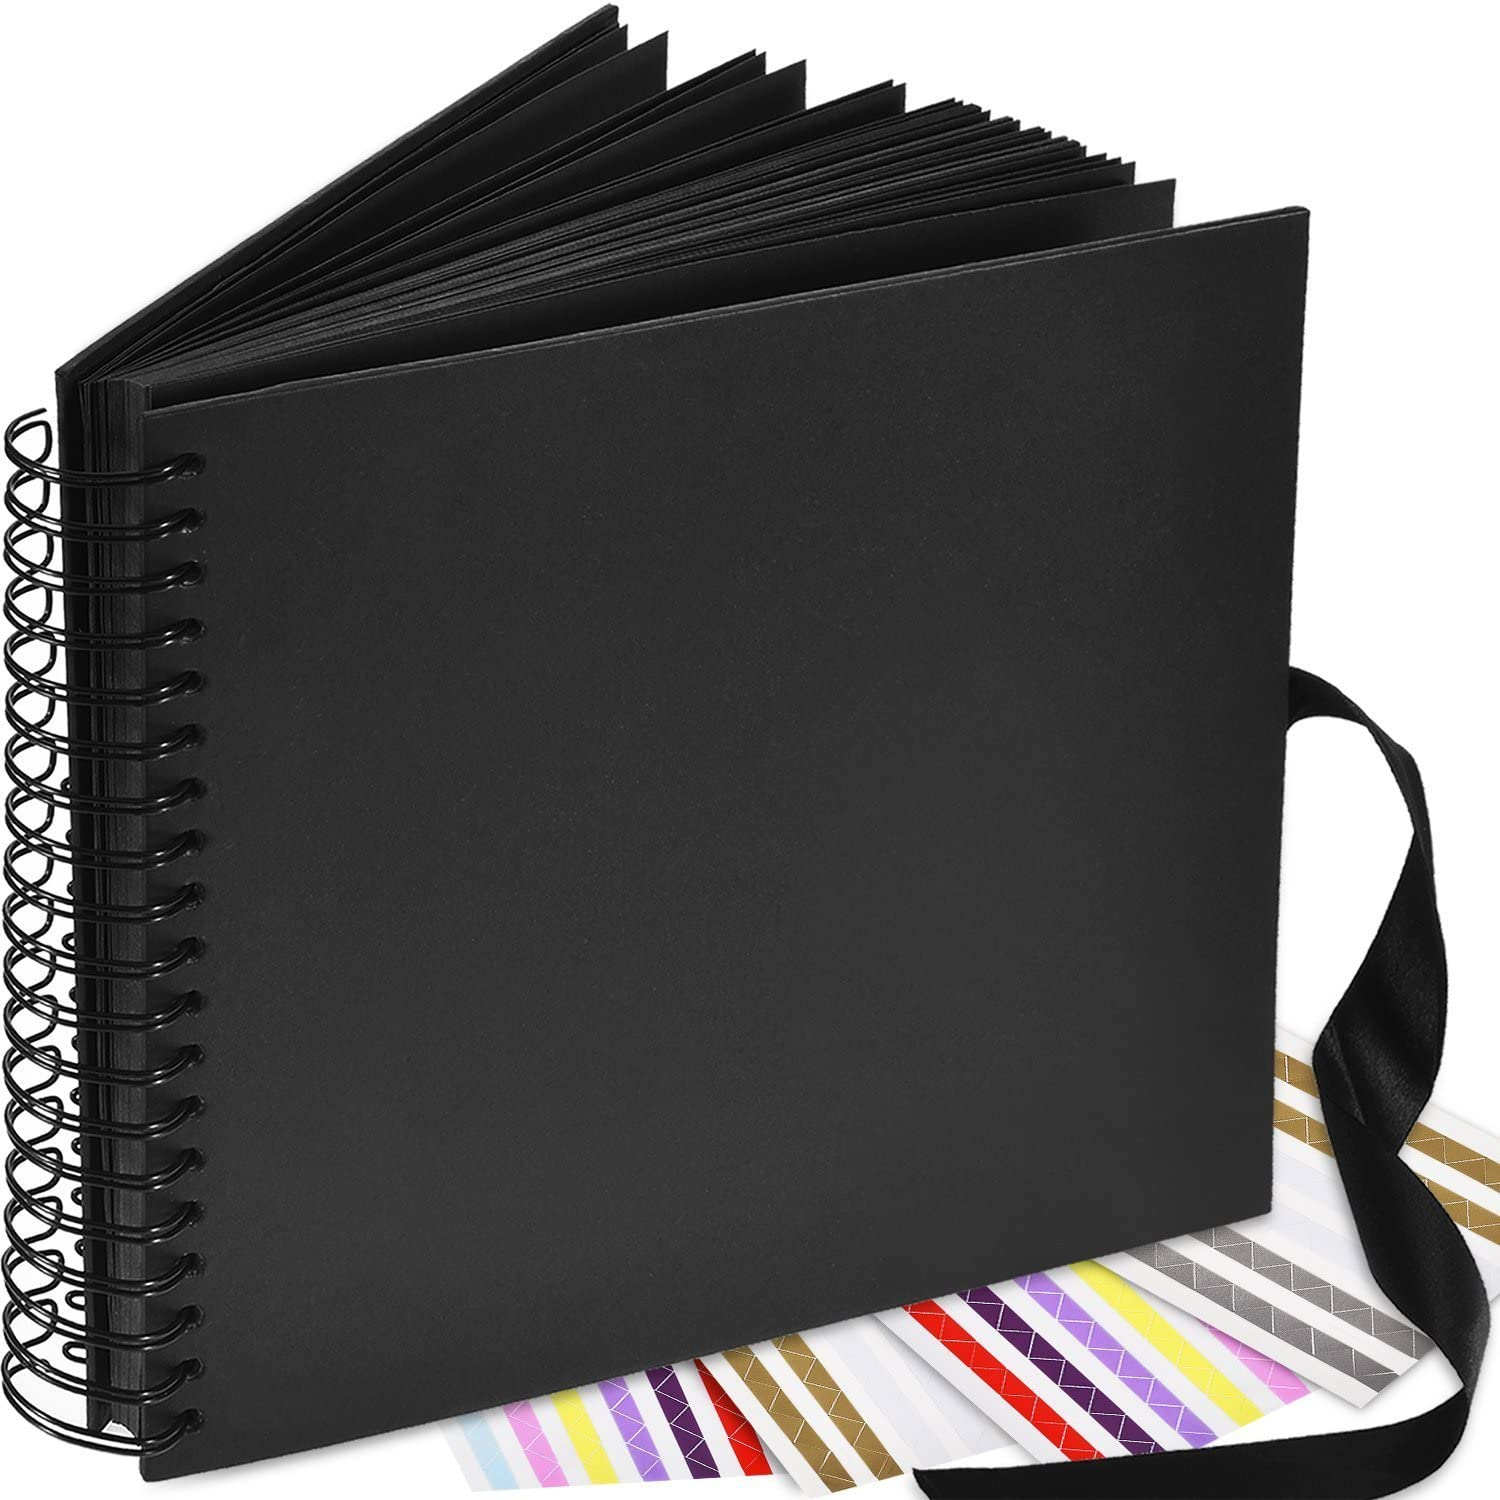 Smarimple Wedding Guest Book Blank Expandable Scrapbook DIY Photo Album Photo Booth Album 80 Pages,Black 8 inch 6 Sheet Stickers